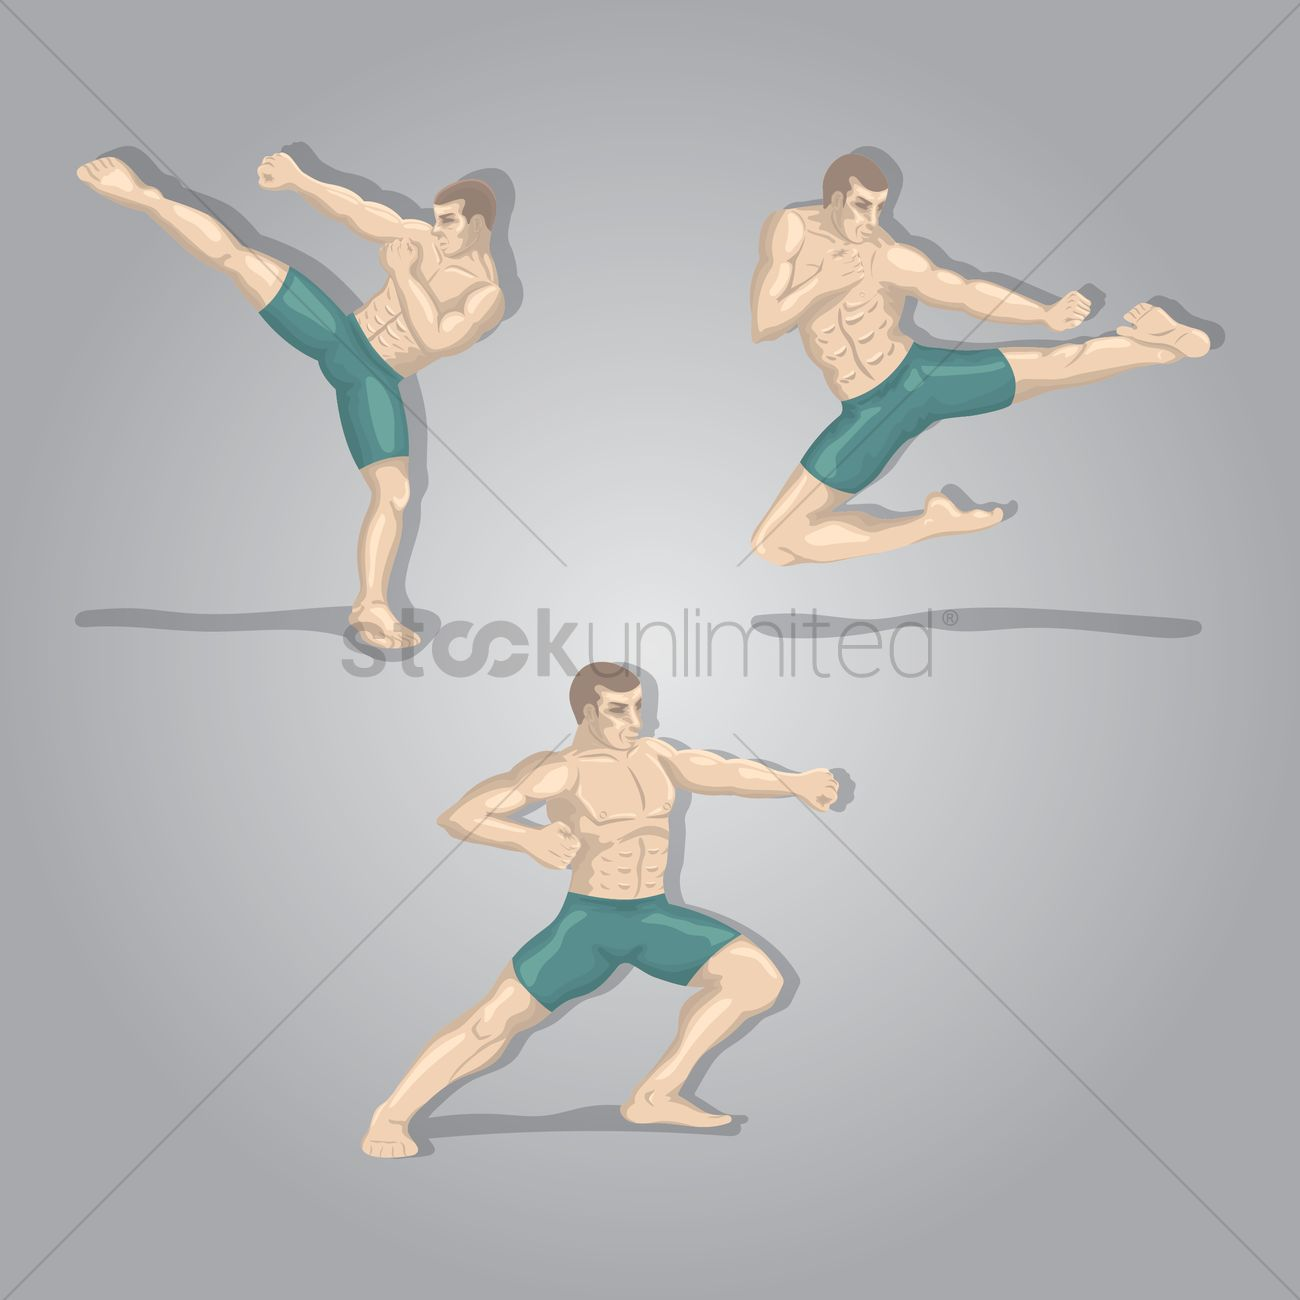 1300x1300 Kickboxing Player In Poses Vector Image